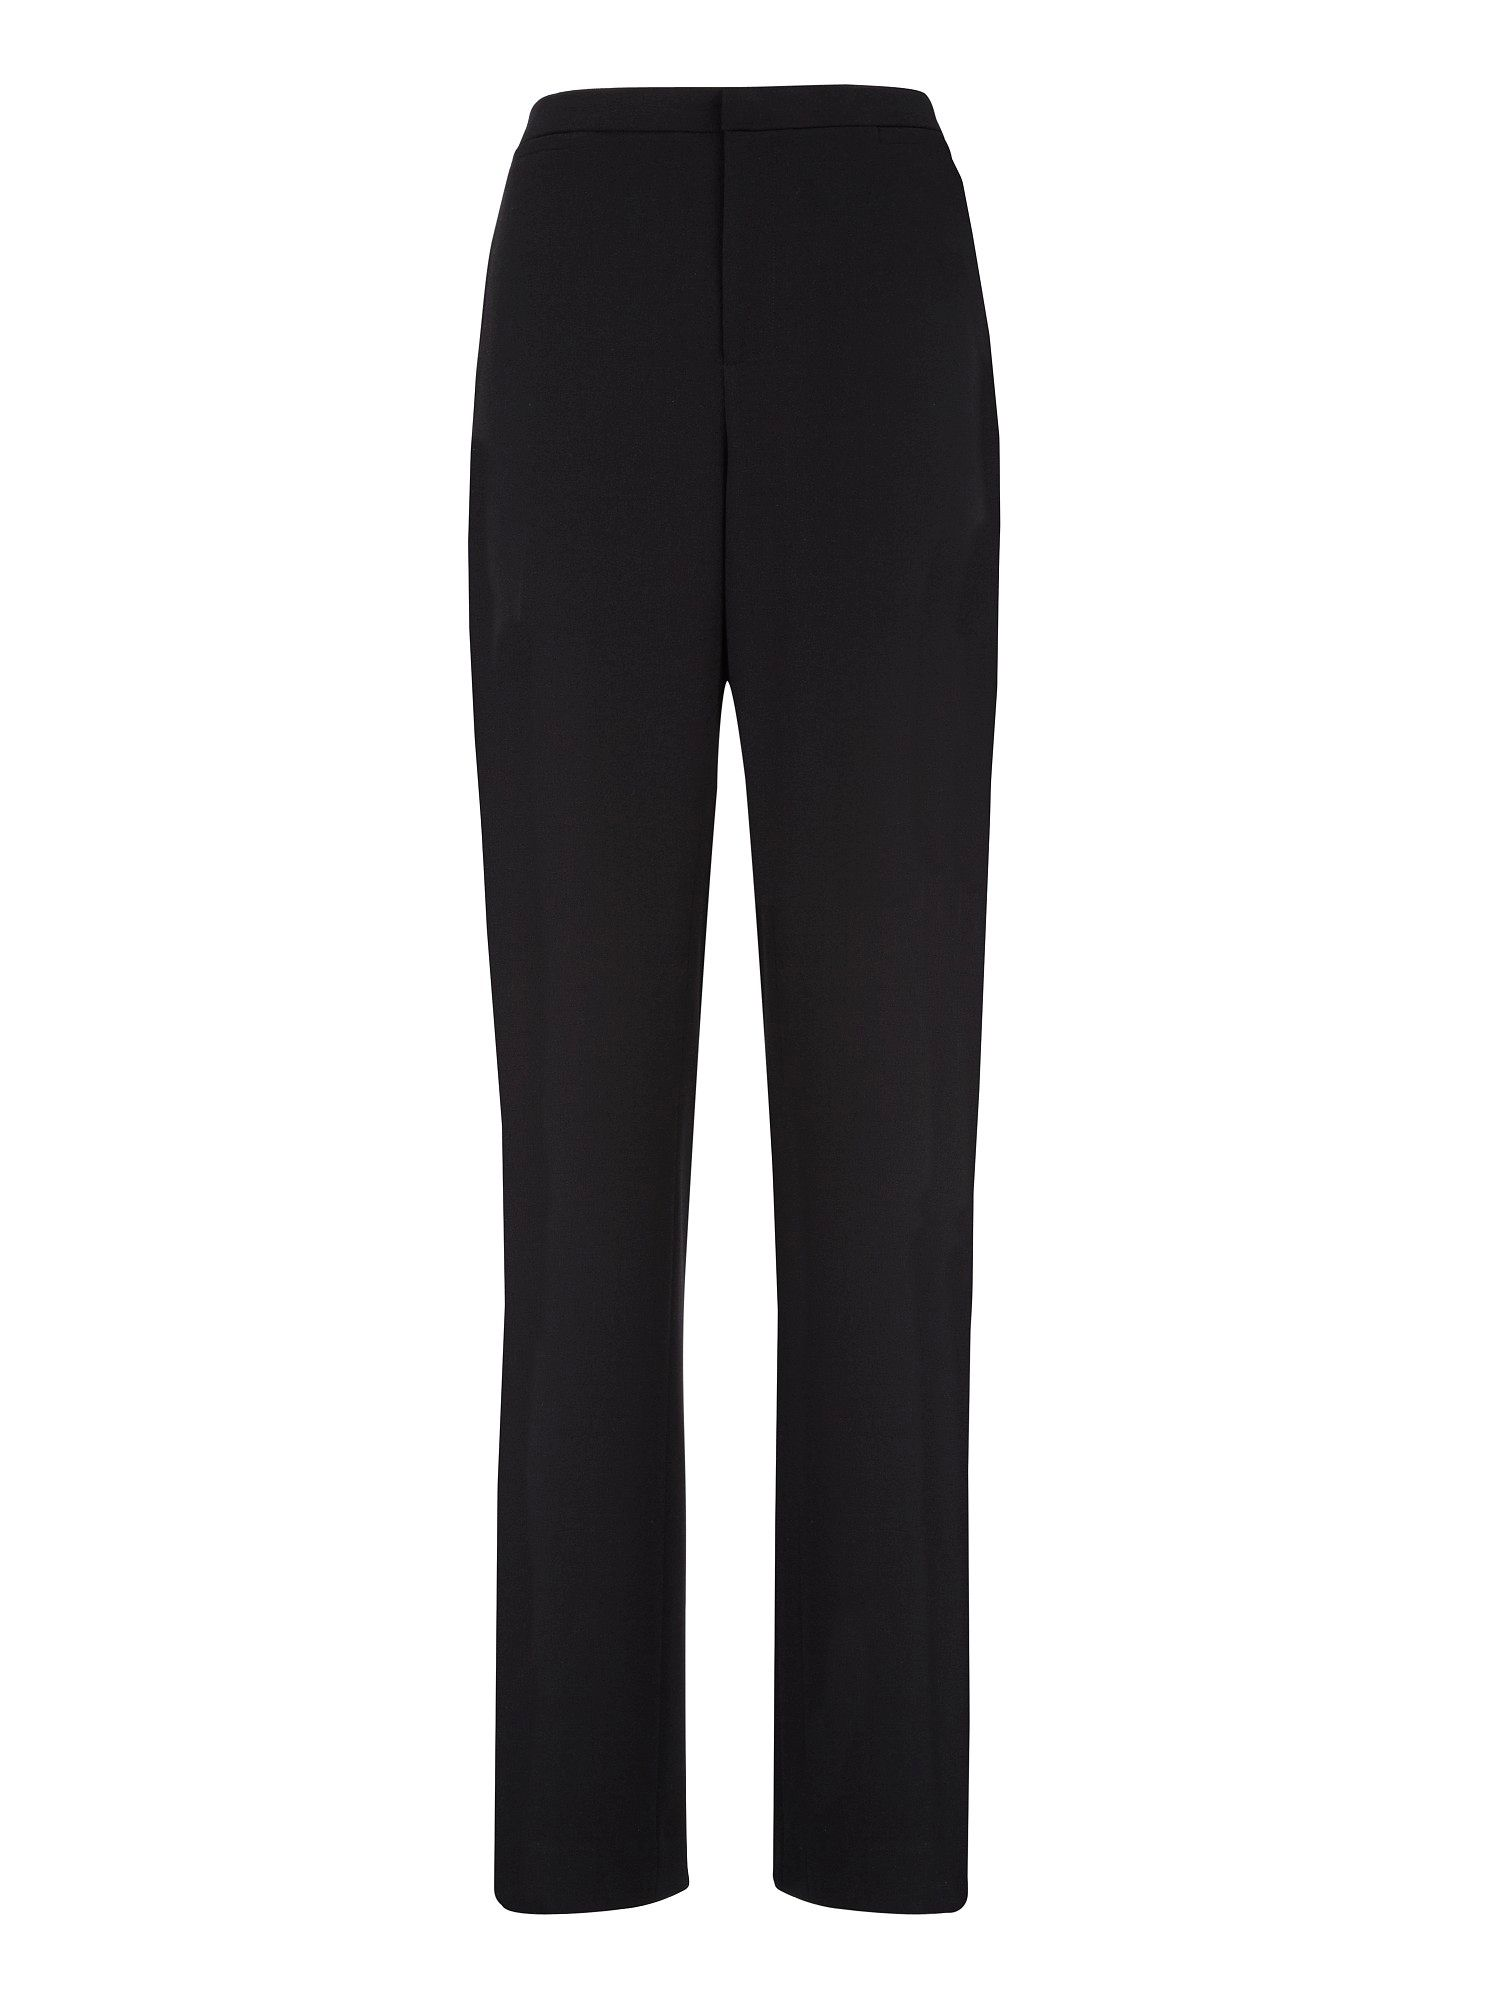 Black textured tailored trousers